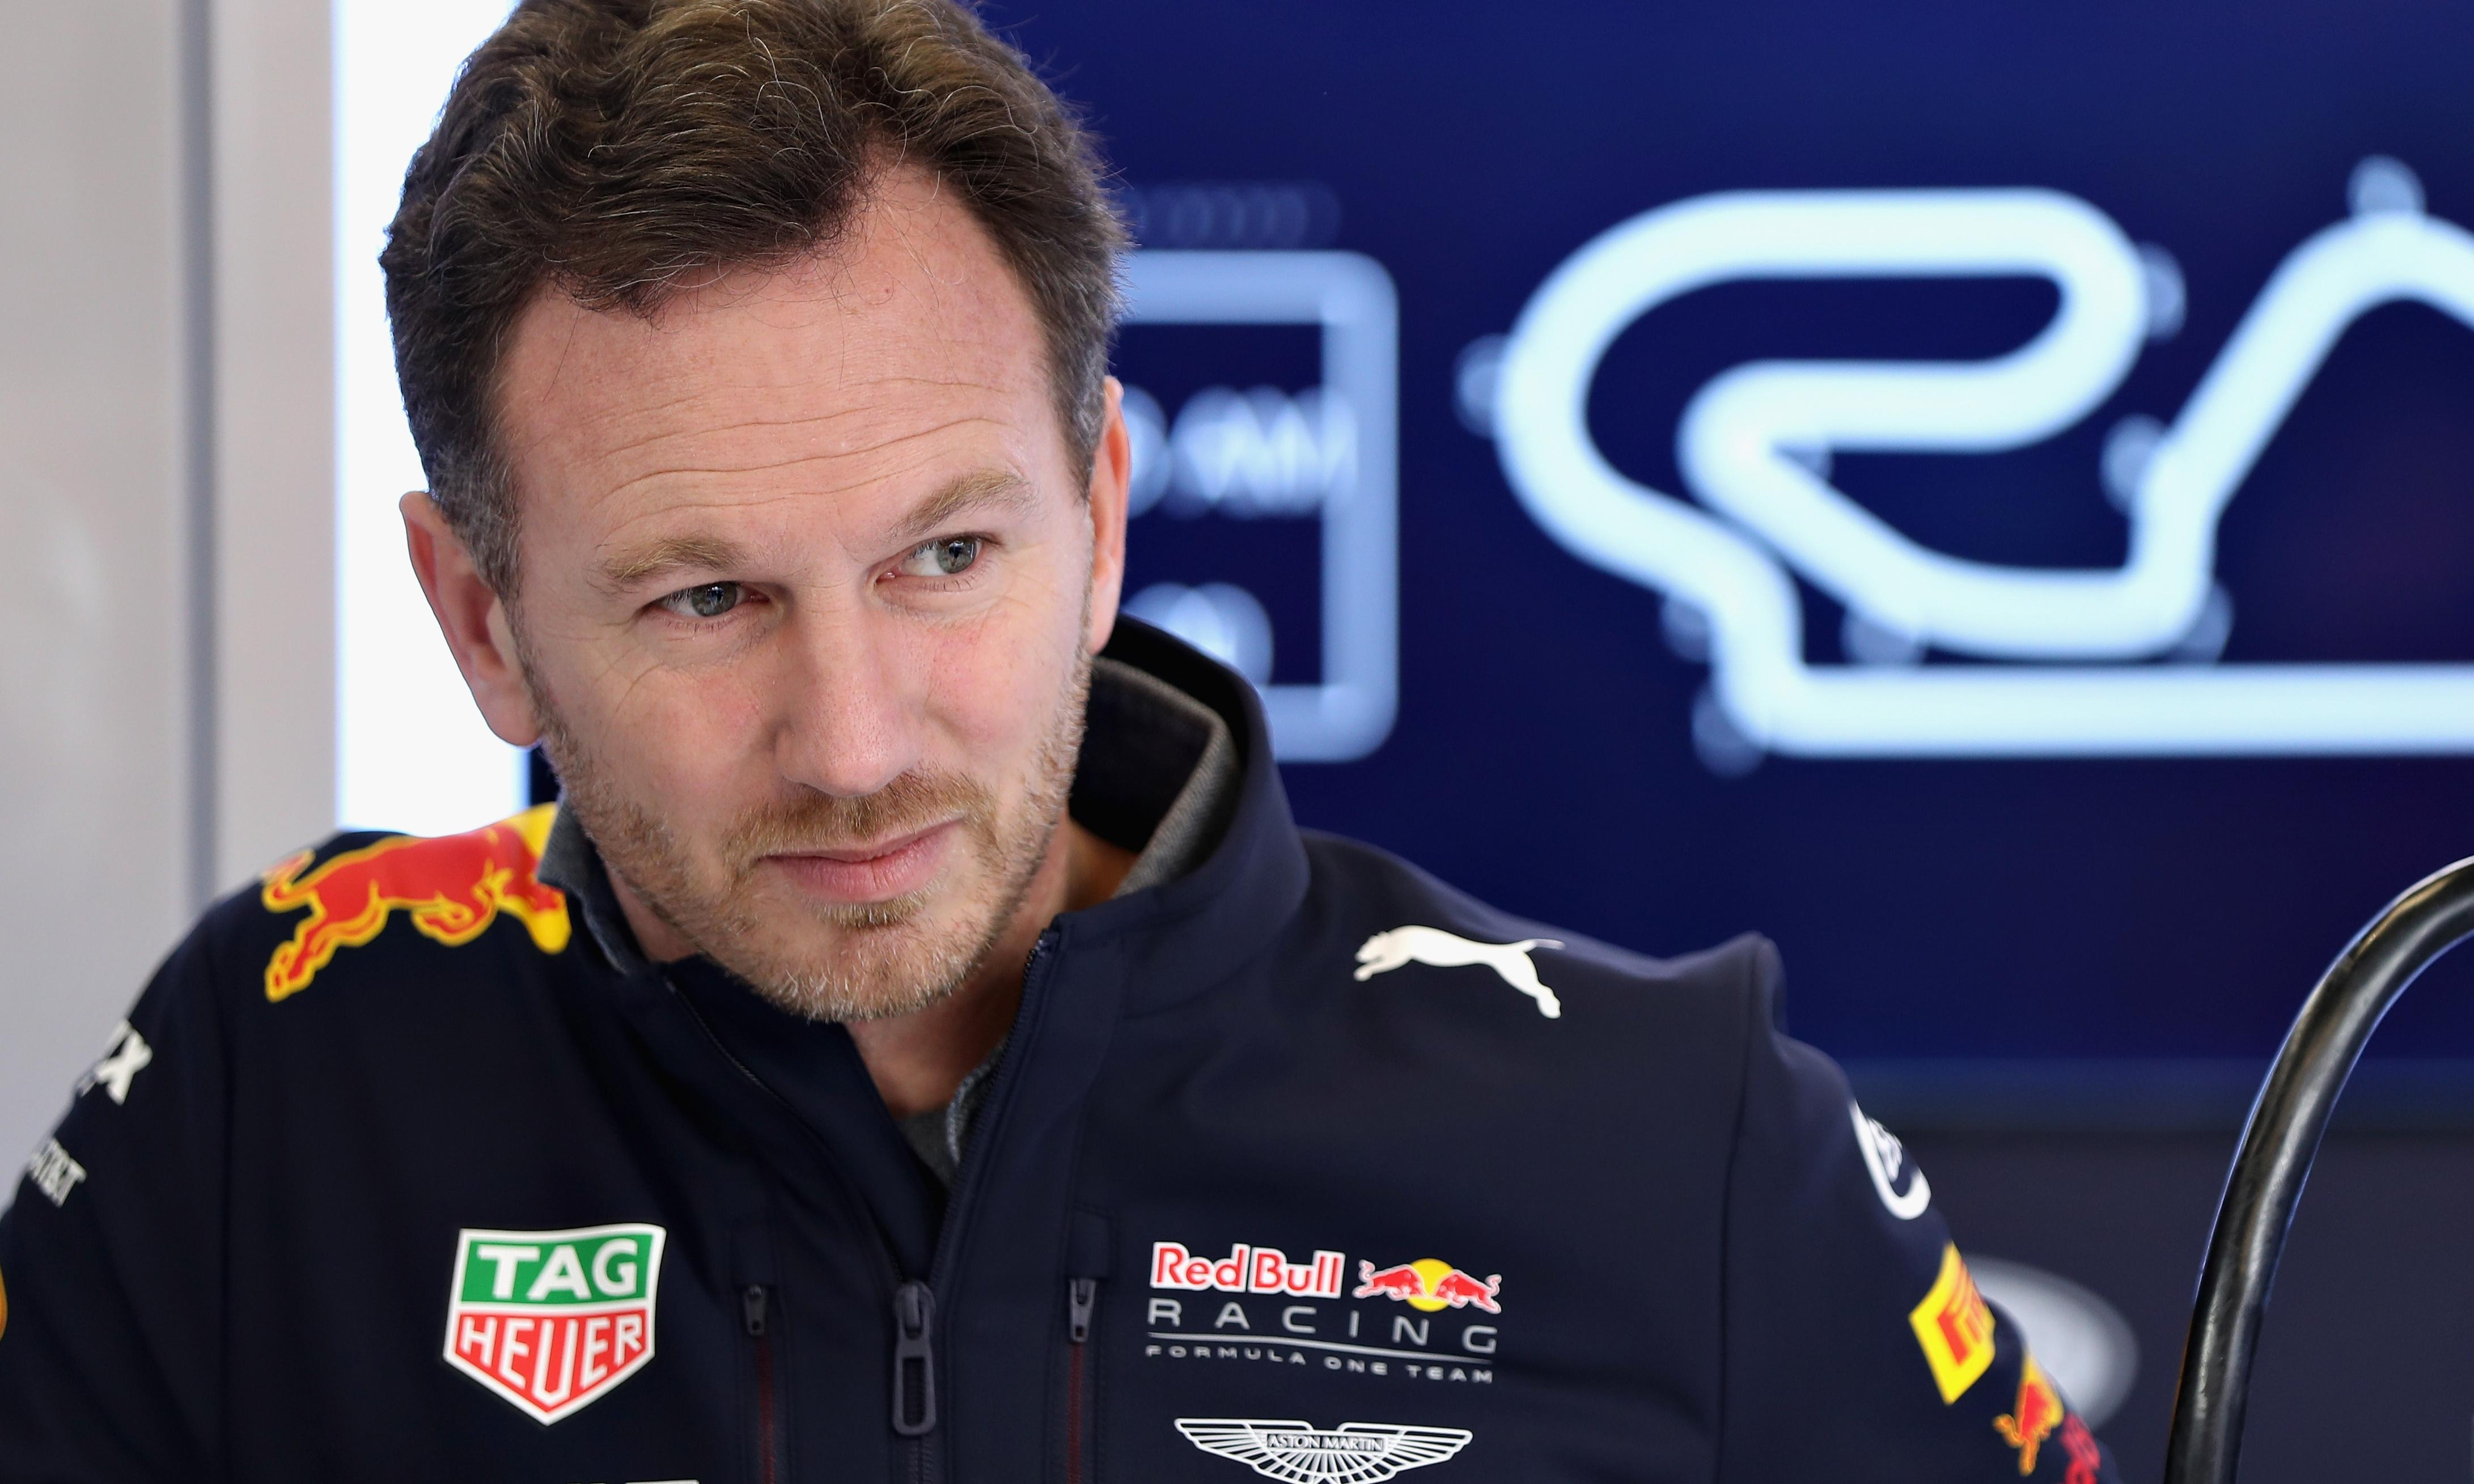 Red Bull's Christian Horner says F1 is in need of competitive racing